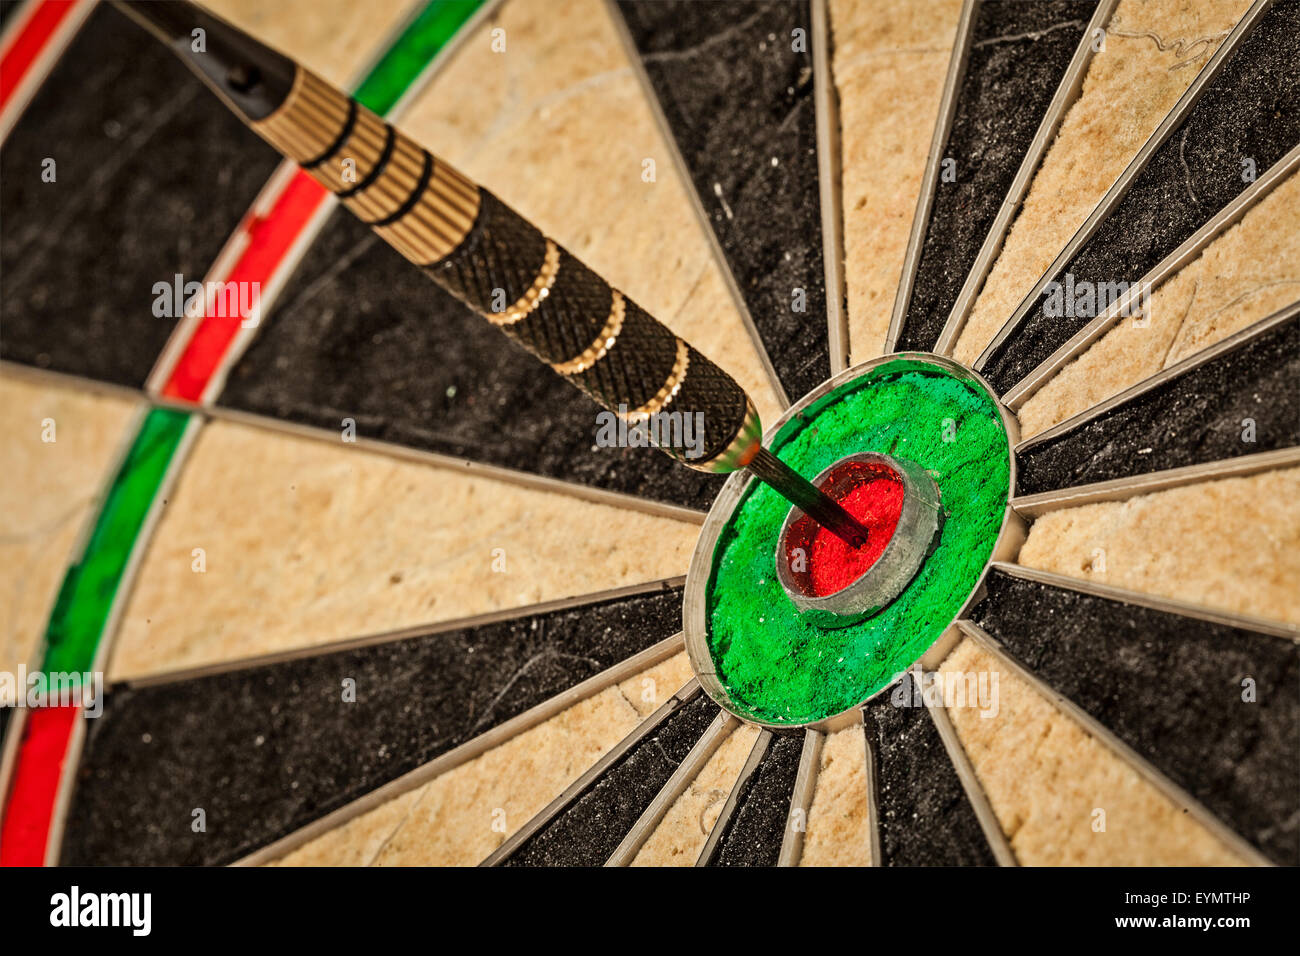 Success hitting target aim goal achievement concept background - dart in bull's eye close up - Stock Image